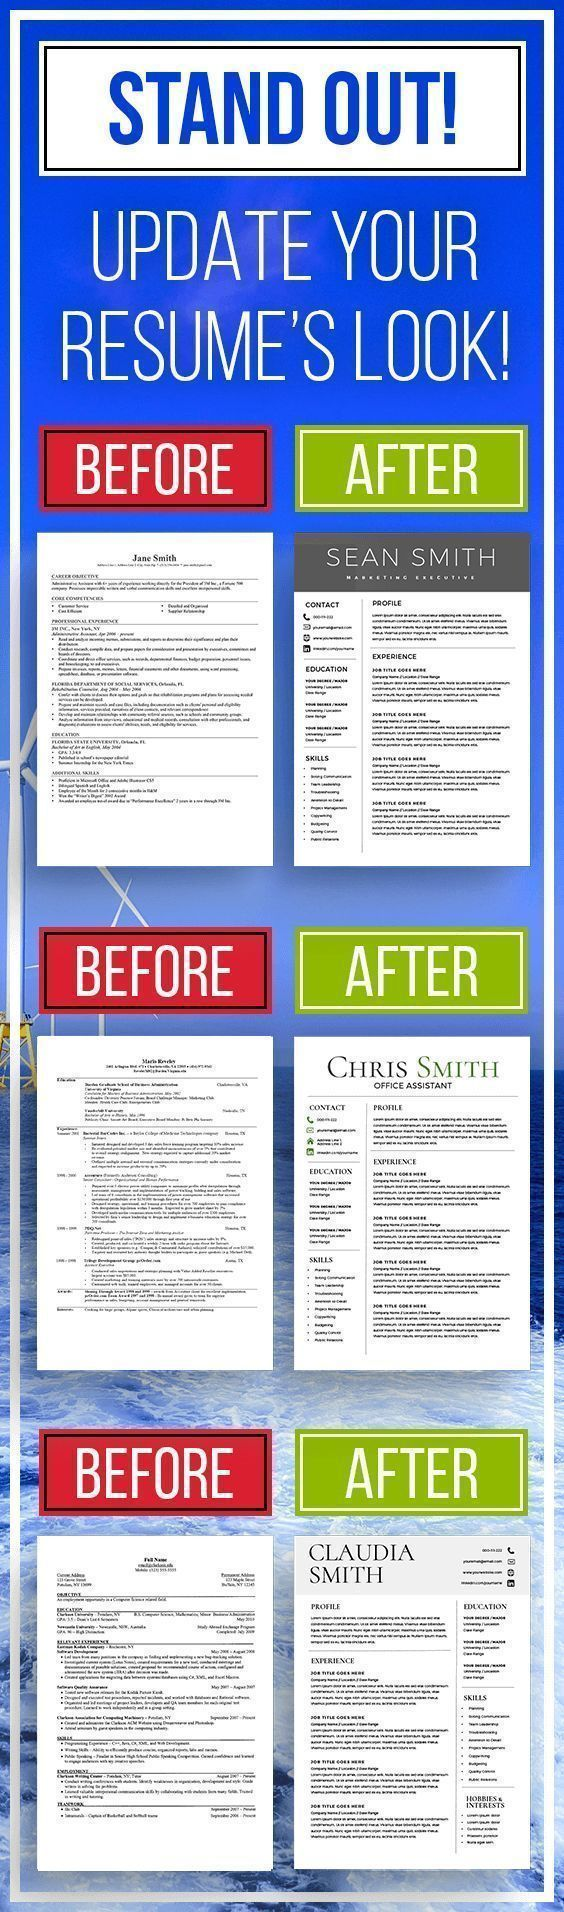 Post Resume Fascinating Update Your Resume's Look Resume Update Post Resume Resume Upload